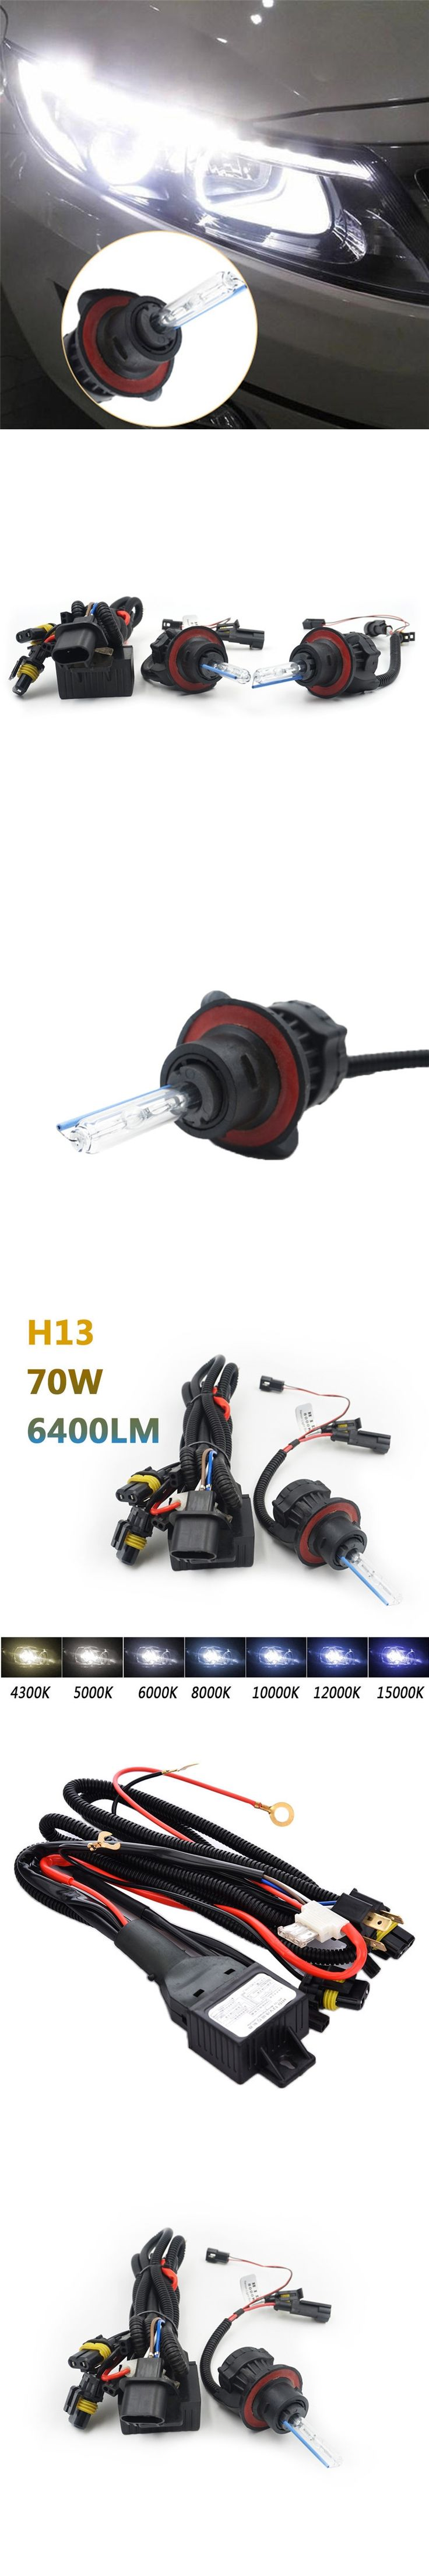 2pcs H13 35W HID Xenon Light 4300K 5000K 6000K 8000K 10000K Auto Polychromatic Light With Cable Assembly Car Headlight bulbs